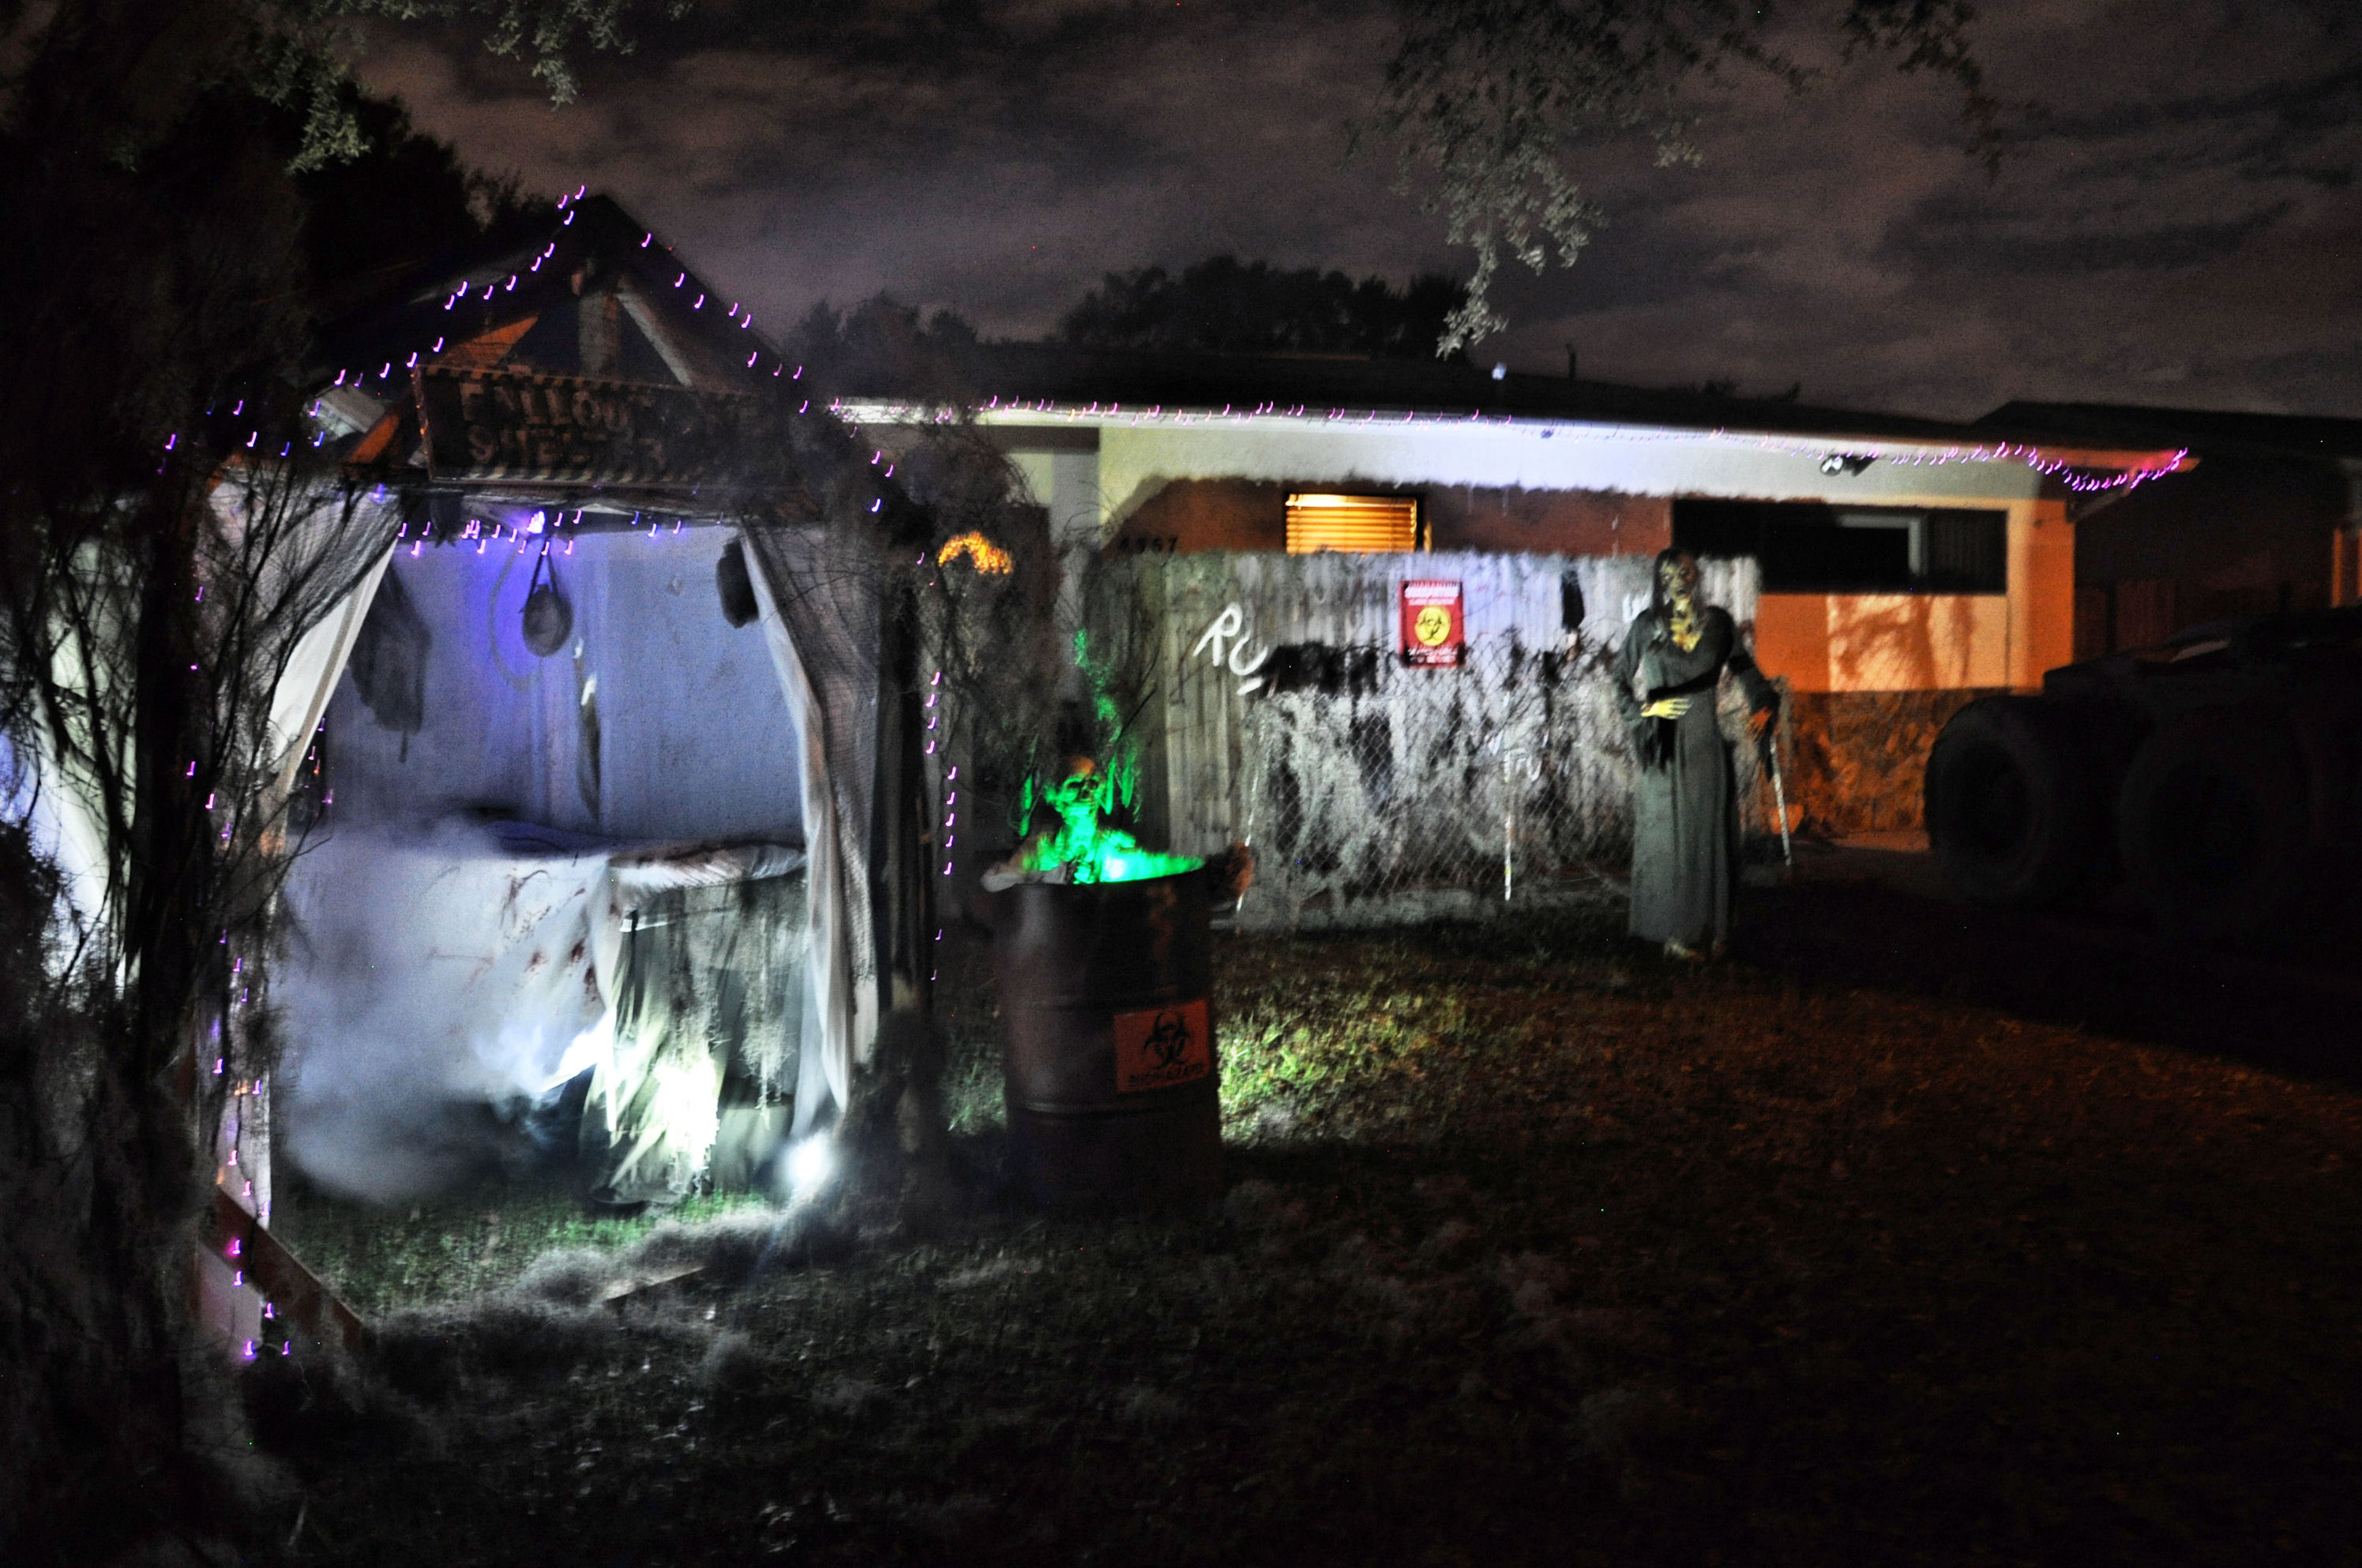 Best halloween decorated yards - Best Neighborhoods And Streets For Halloween Decorations 058 Jpg